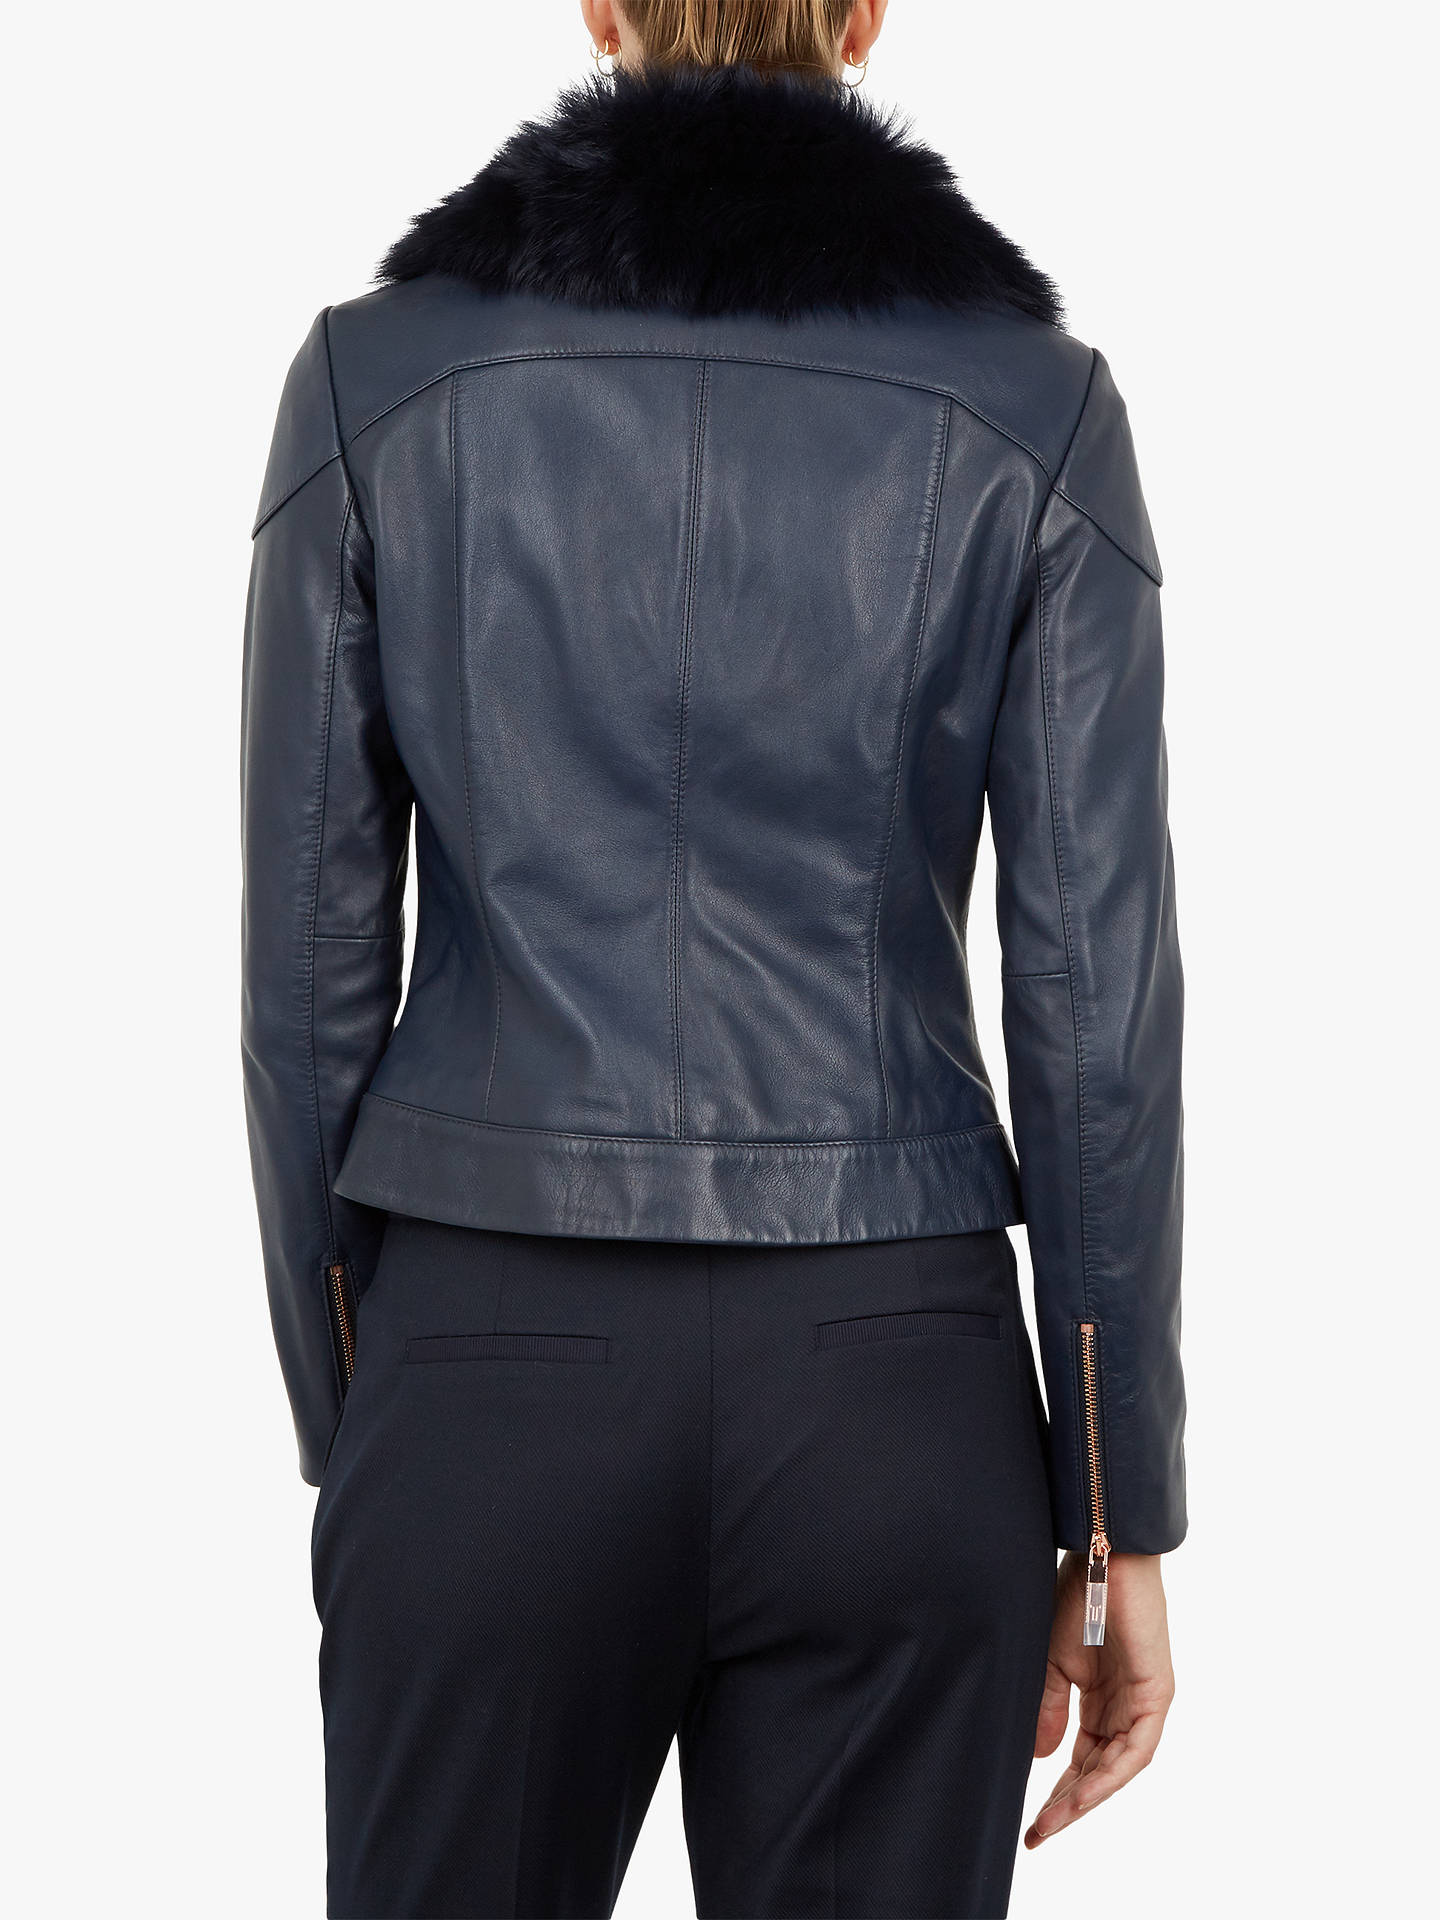 BuyTed Baker Tamri Leather Jacket, Navy, 1 Online at johnlewis.com